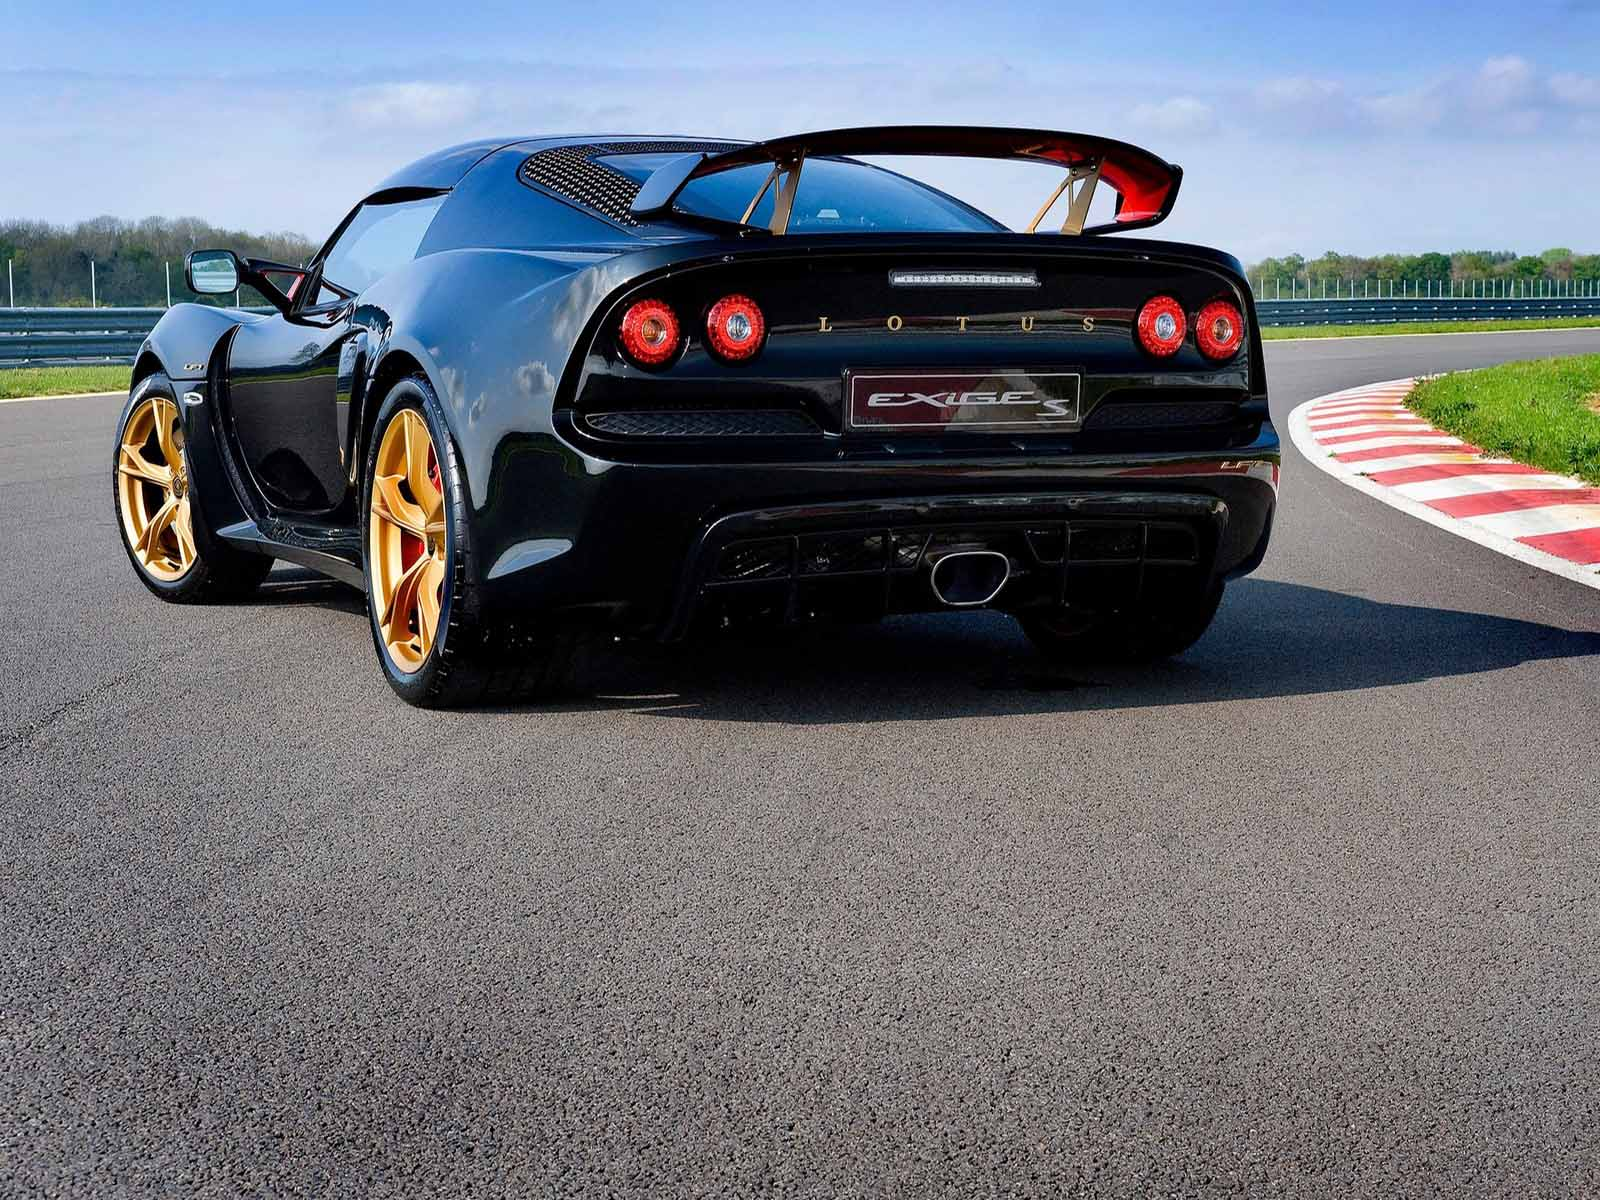 Lotus-Exige-LF-Limited-Edition-Free-Car-wallpaper-wp560585